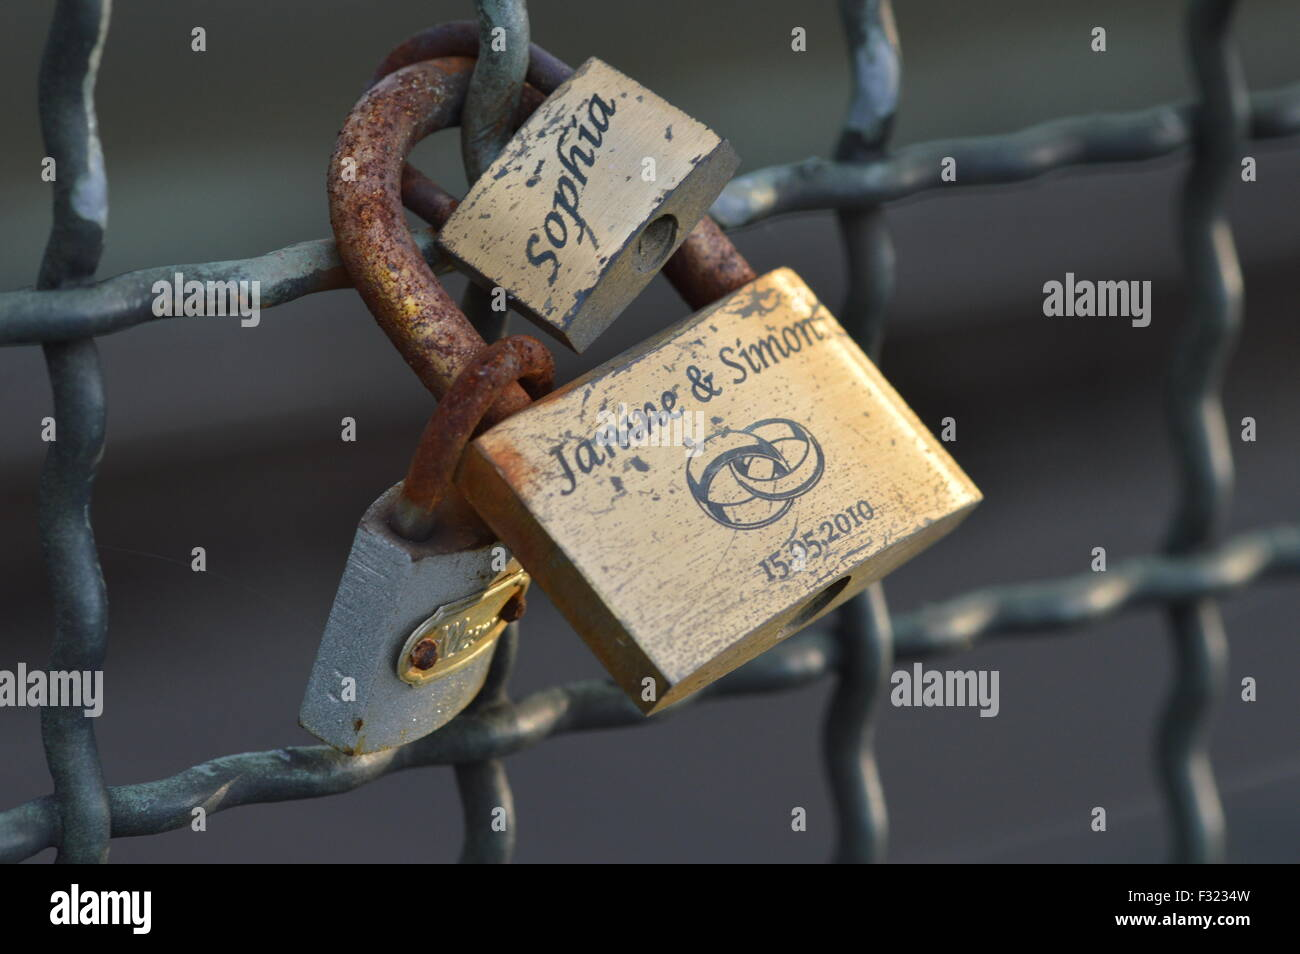 Cologne germany september 25 2015 locks with messages of cologne germany september 25 2015 locks with messages of lovers on hohenzollern bridge as a symbol of everlasting love biocorpaavc